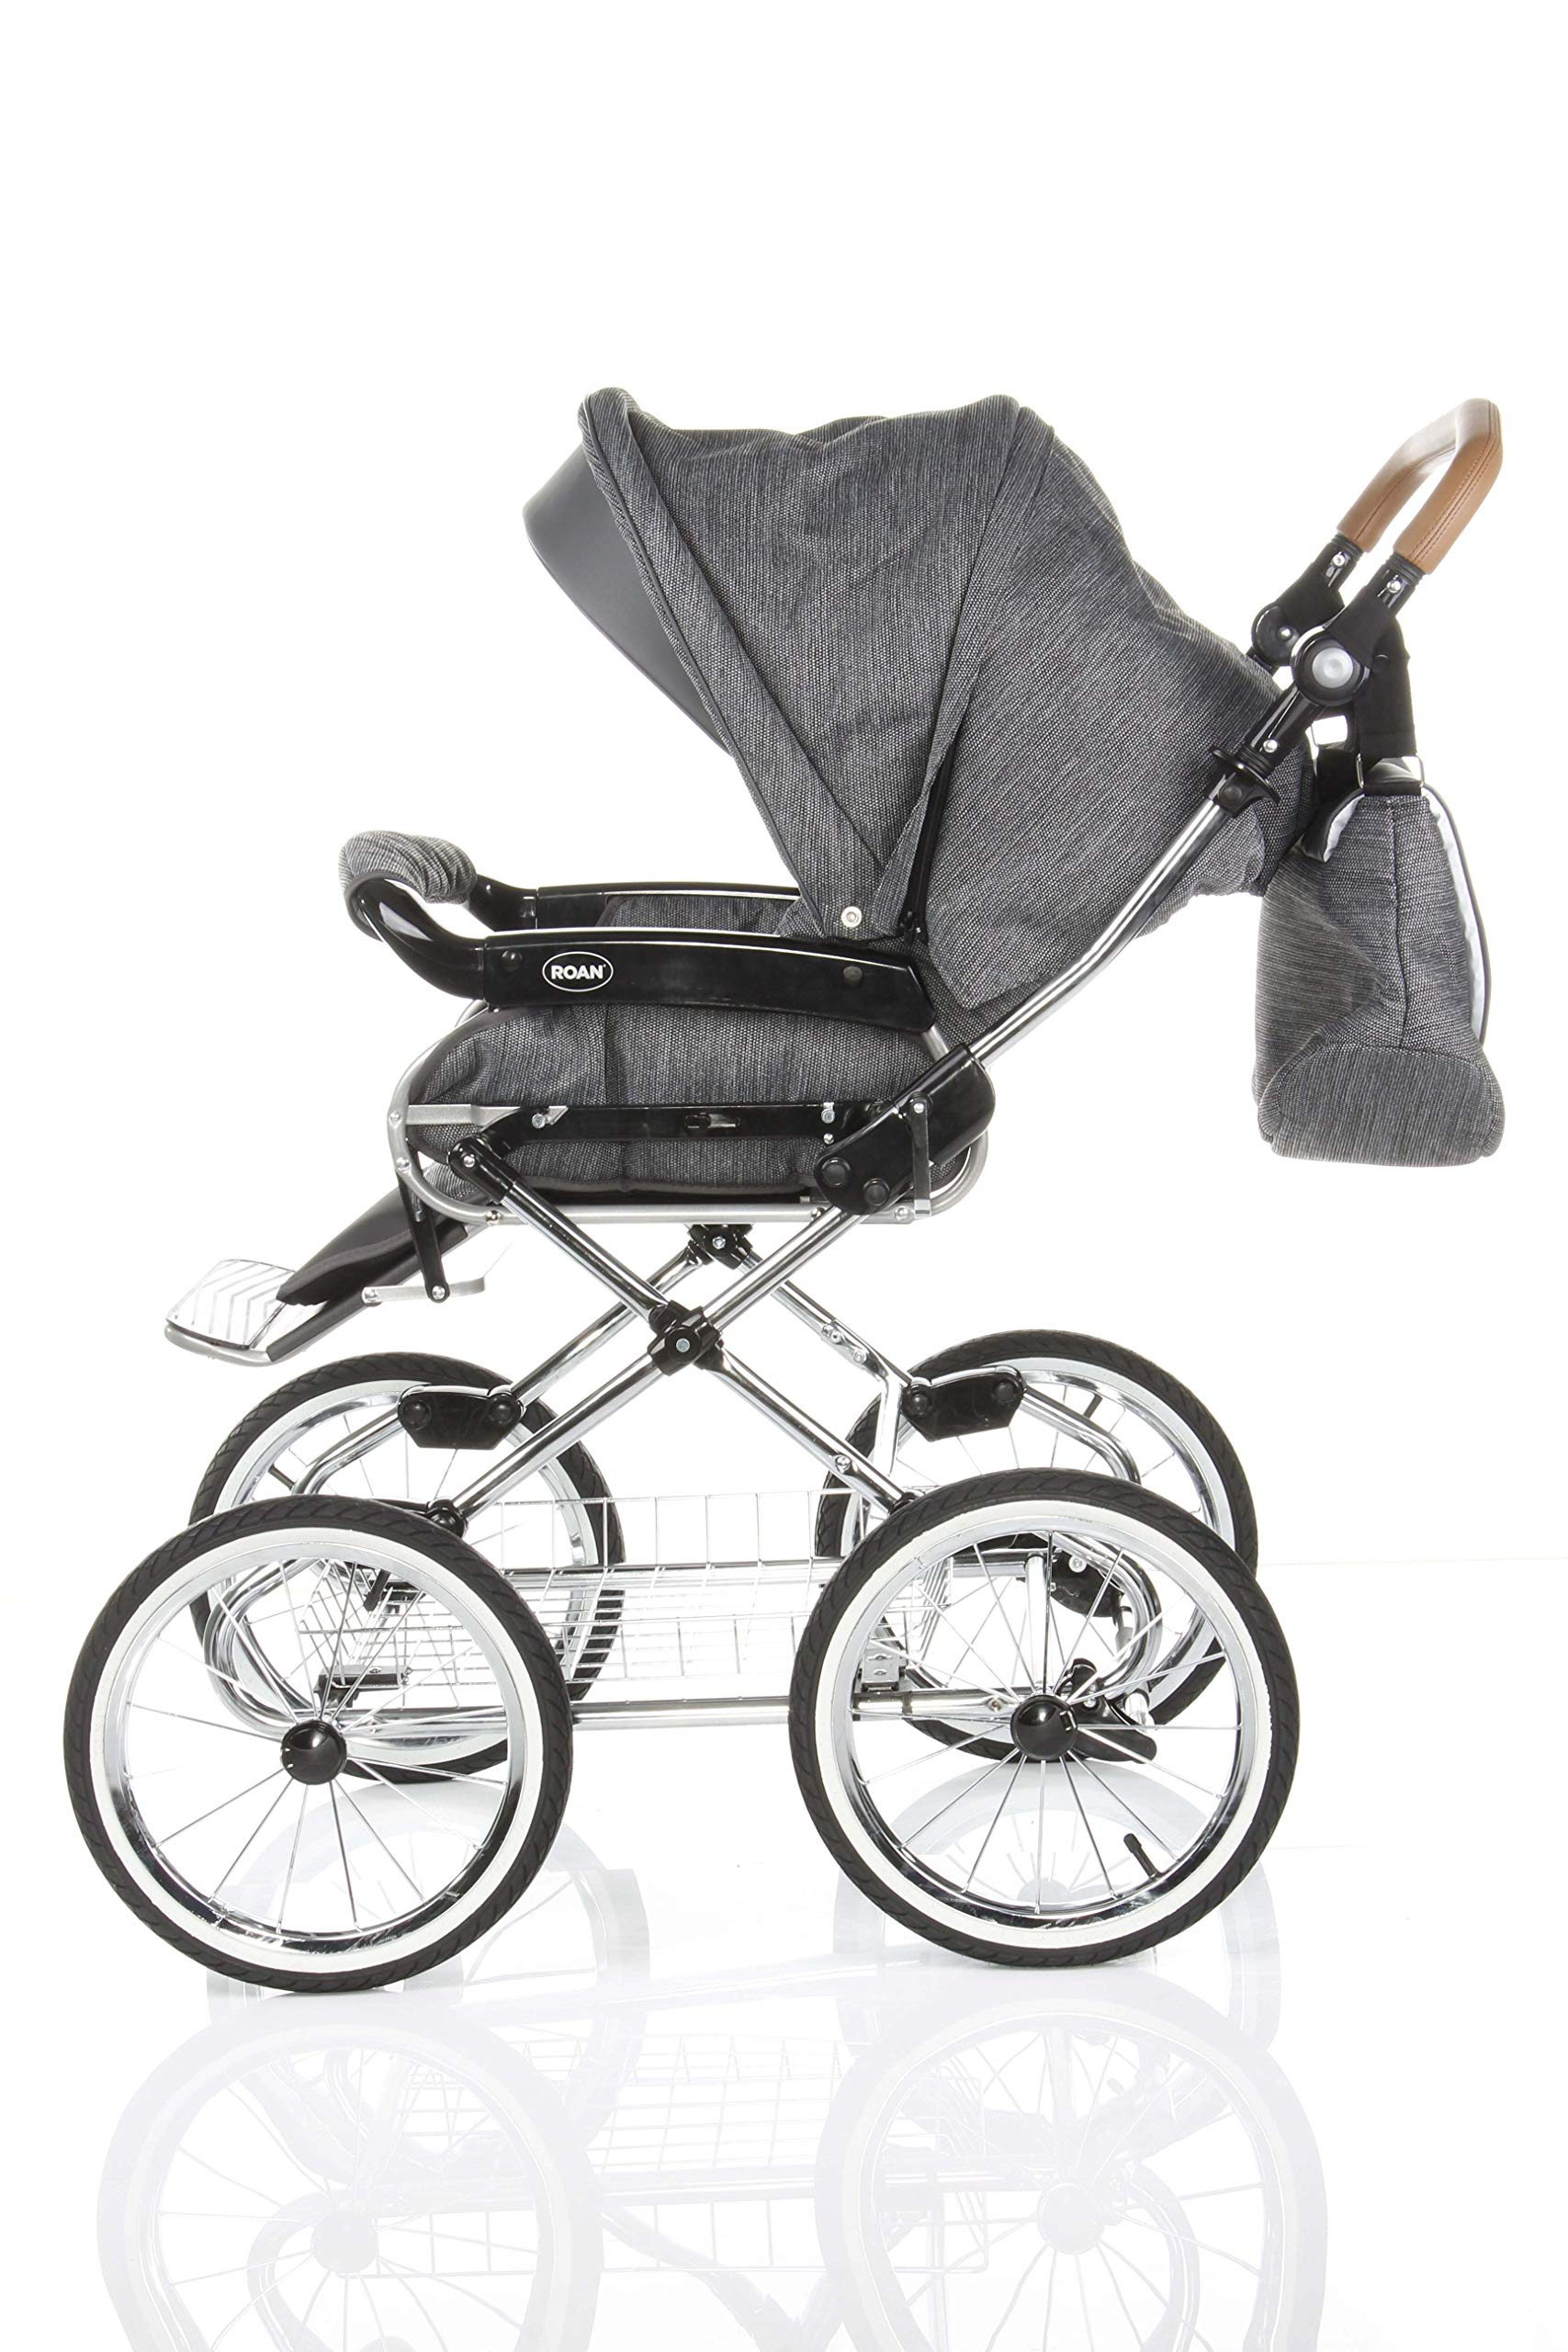 Children's Pram Buggy Stroller Combination Car seat Classic Retro Baby Carrier ROAN Emma (E-81 Dark Grey Melange-Grey Leather, 2IN1) JUNAMA Frame / wheels Sturdy and lightweight aluminum frame construction with folding function 1-click system for easy assembly and disassembly Practical carrying handle for easy storage of the folded frame Wheels for inflating (14 inch) removable wheels Brake system with central brake Height-adjustable push handle - 10-fold matching shopping basket Dimensions folded with wheels: 86 x 60 x 40 cm folded without wheels: 76 x 60 x 26 cm Total height of the stroller to hood top: 106 cm Height of the tub from the ground: 60 cm Wheelbase External dimensions: 80x 58 cm Variable height of the push handle: 77- 119 cm Weight of the frame incl. Wheels and carrying bag 15 kg Carrycot Length and width of carrycot outside: 88 x 42 cm Carrying bag length and width inside: 76 x 35 cm Sturdy plastic tub with comfortable mattress and side protection Ventilation slots on the plastic tub The baby car seat 0-13 kg Maxi-Cosi in black incl. Adapter 8